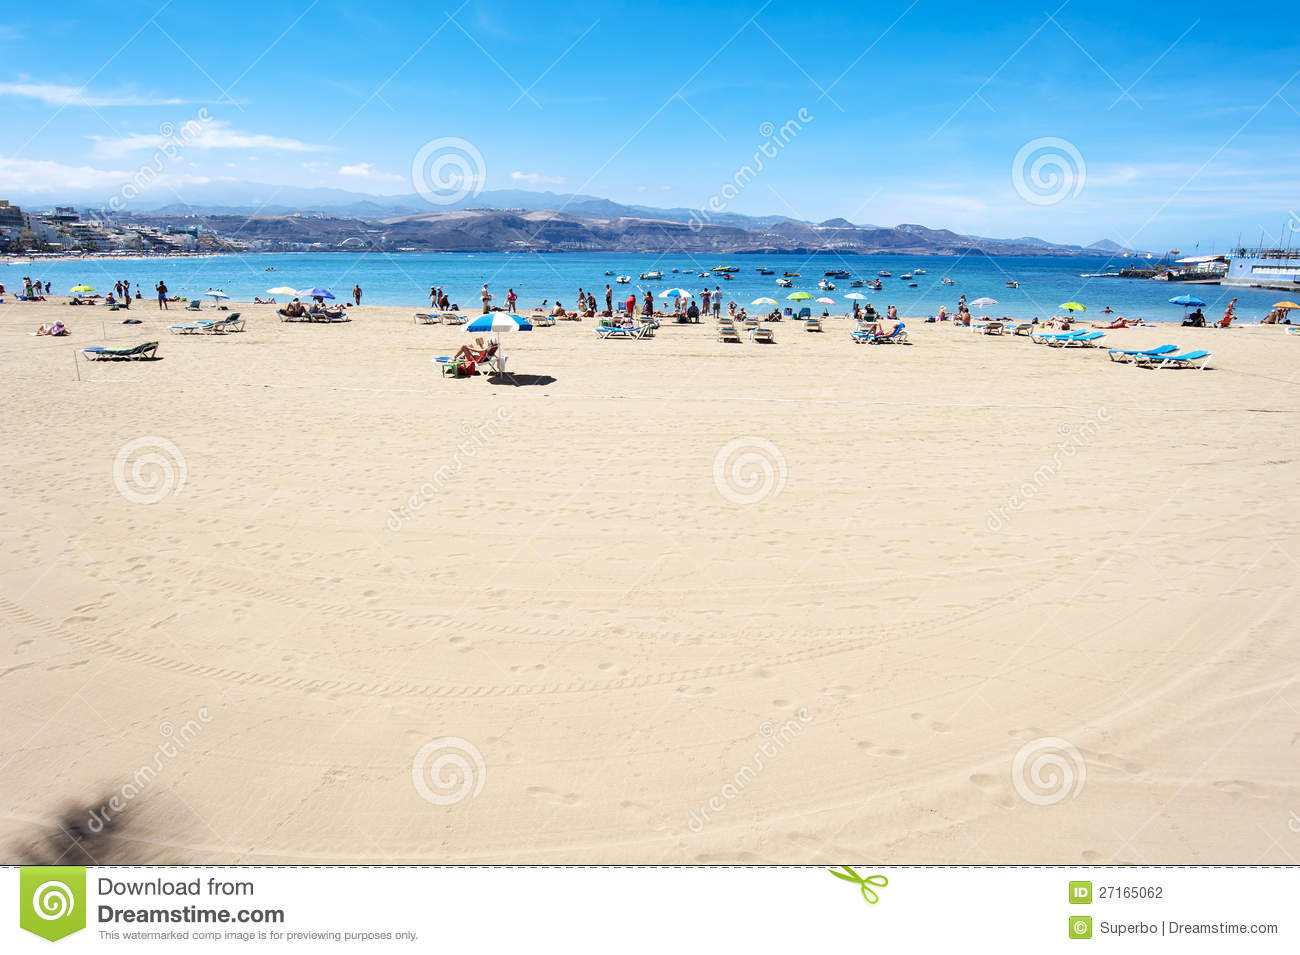 las palmas de gran canaria single parent personals City/state las palmas de gran canaria/ las palmas country spain start sep 2018 - oct 2018 duration of stay 1-3 months good knowledge of english, spanish last action 26 jun 2018 0 2 100.